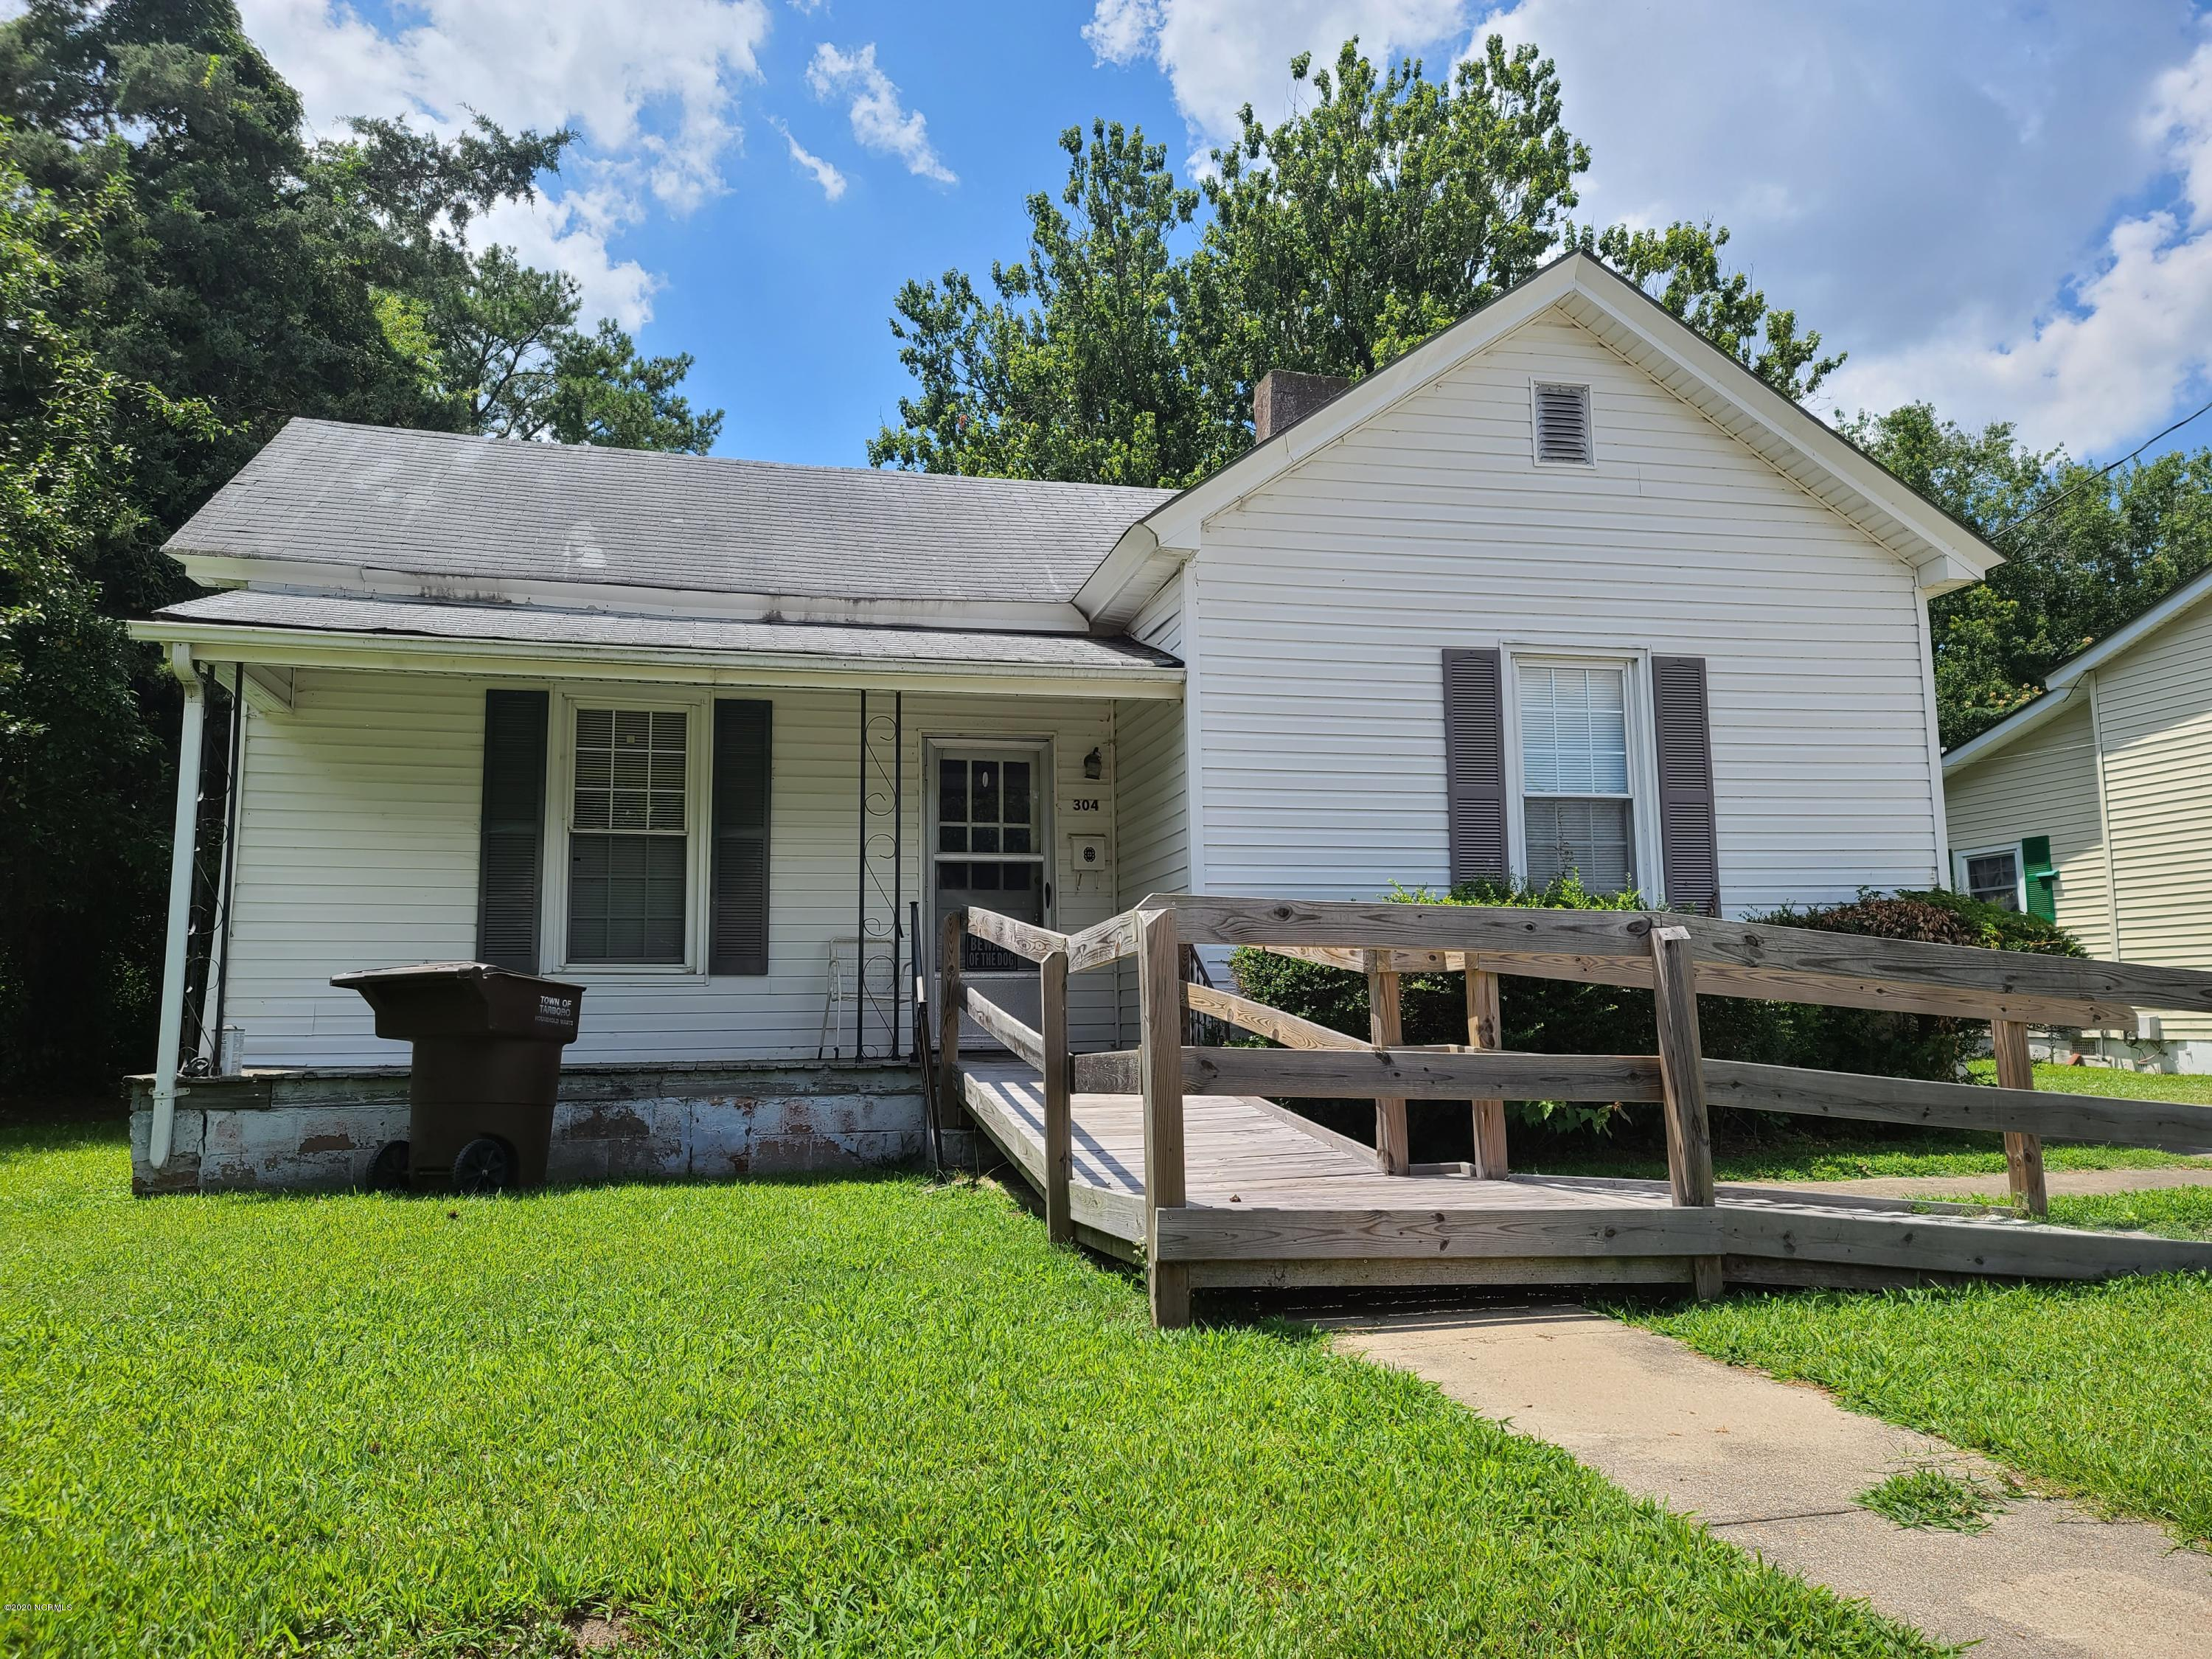 304 Walker Street, Tarboro, North Carolina 27886, 2 Bedrooms Bedrooms, 4 Rooms Rooms,1 BathroomBathrooms,Single family residence,For sale,Walker,100228089